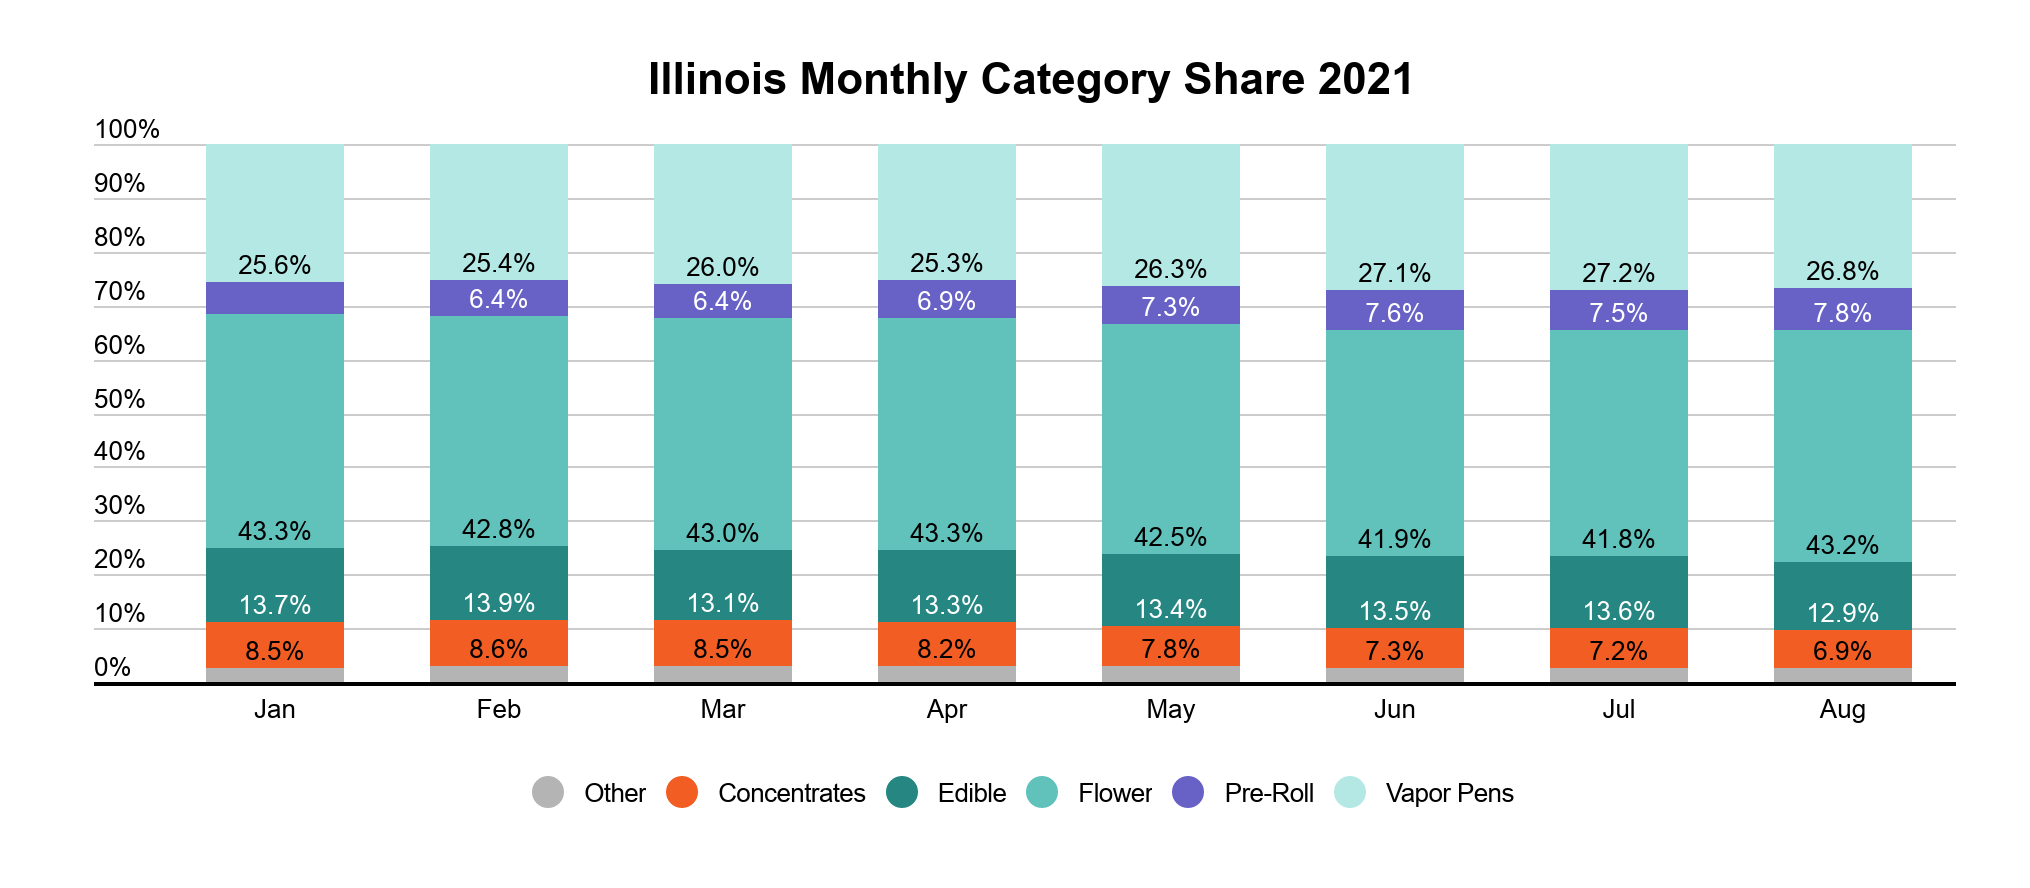 Illinois cannabis market overview graph 5: Cannabis category market share in Illinois